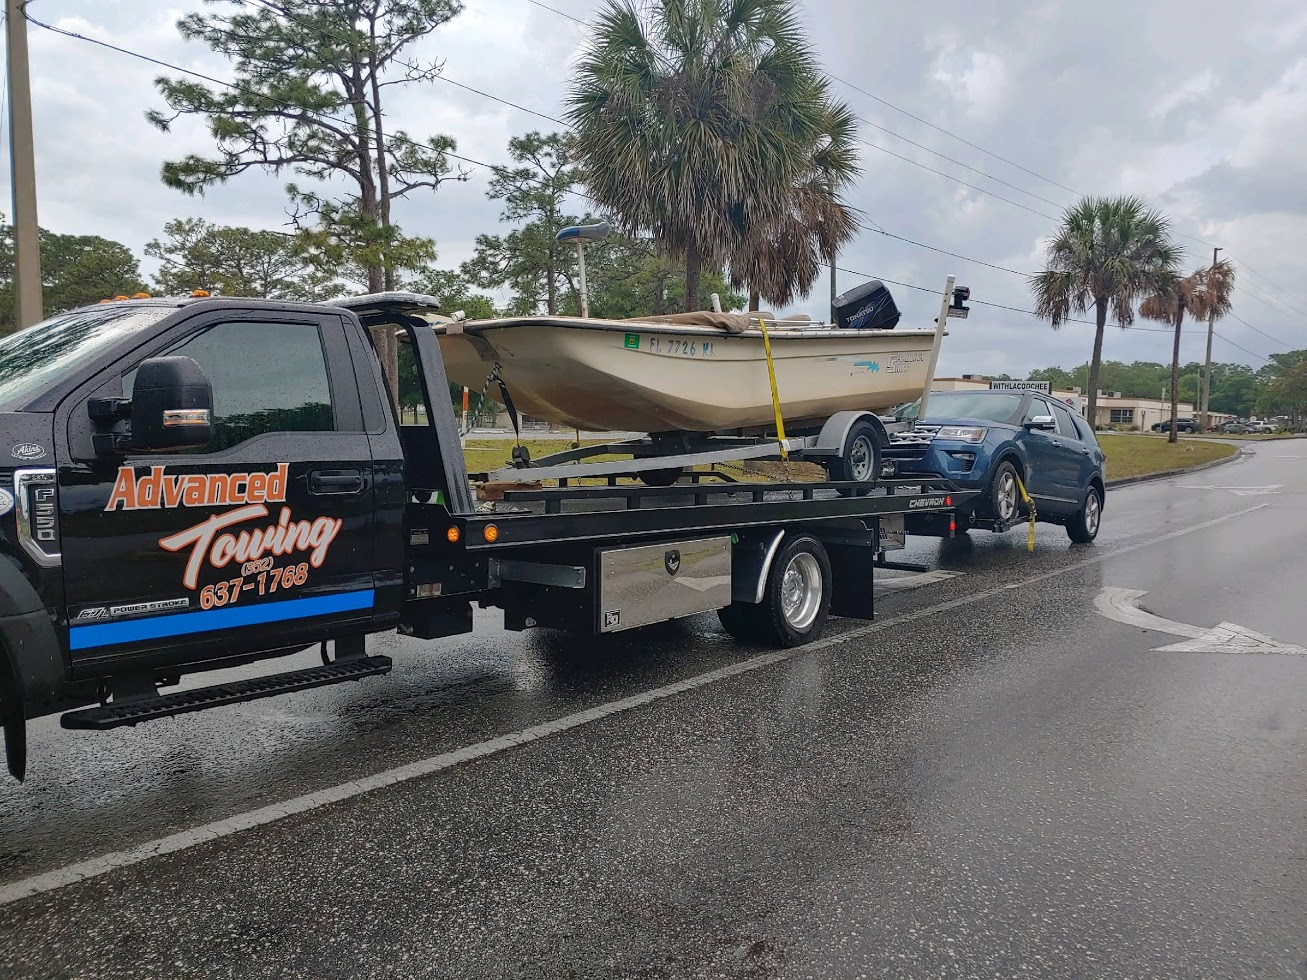 Advanced Towing image 39